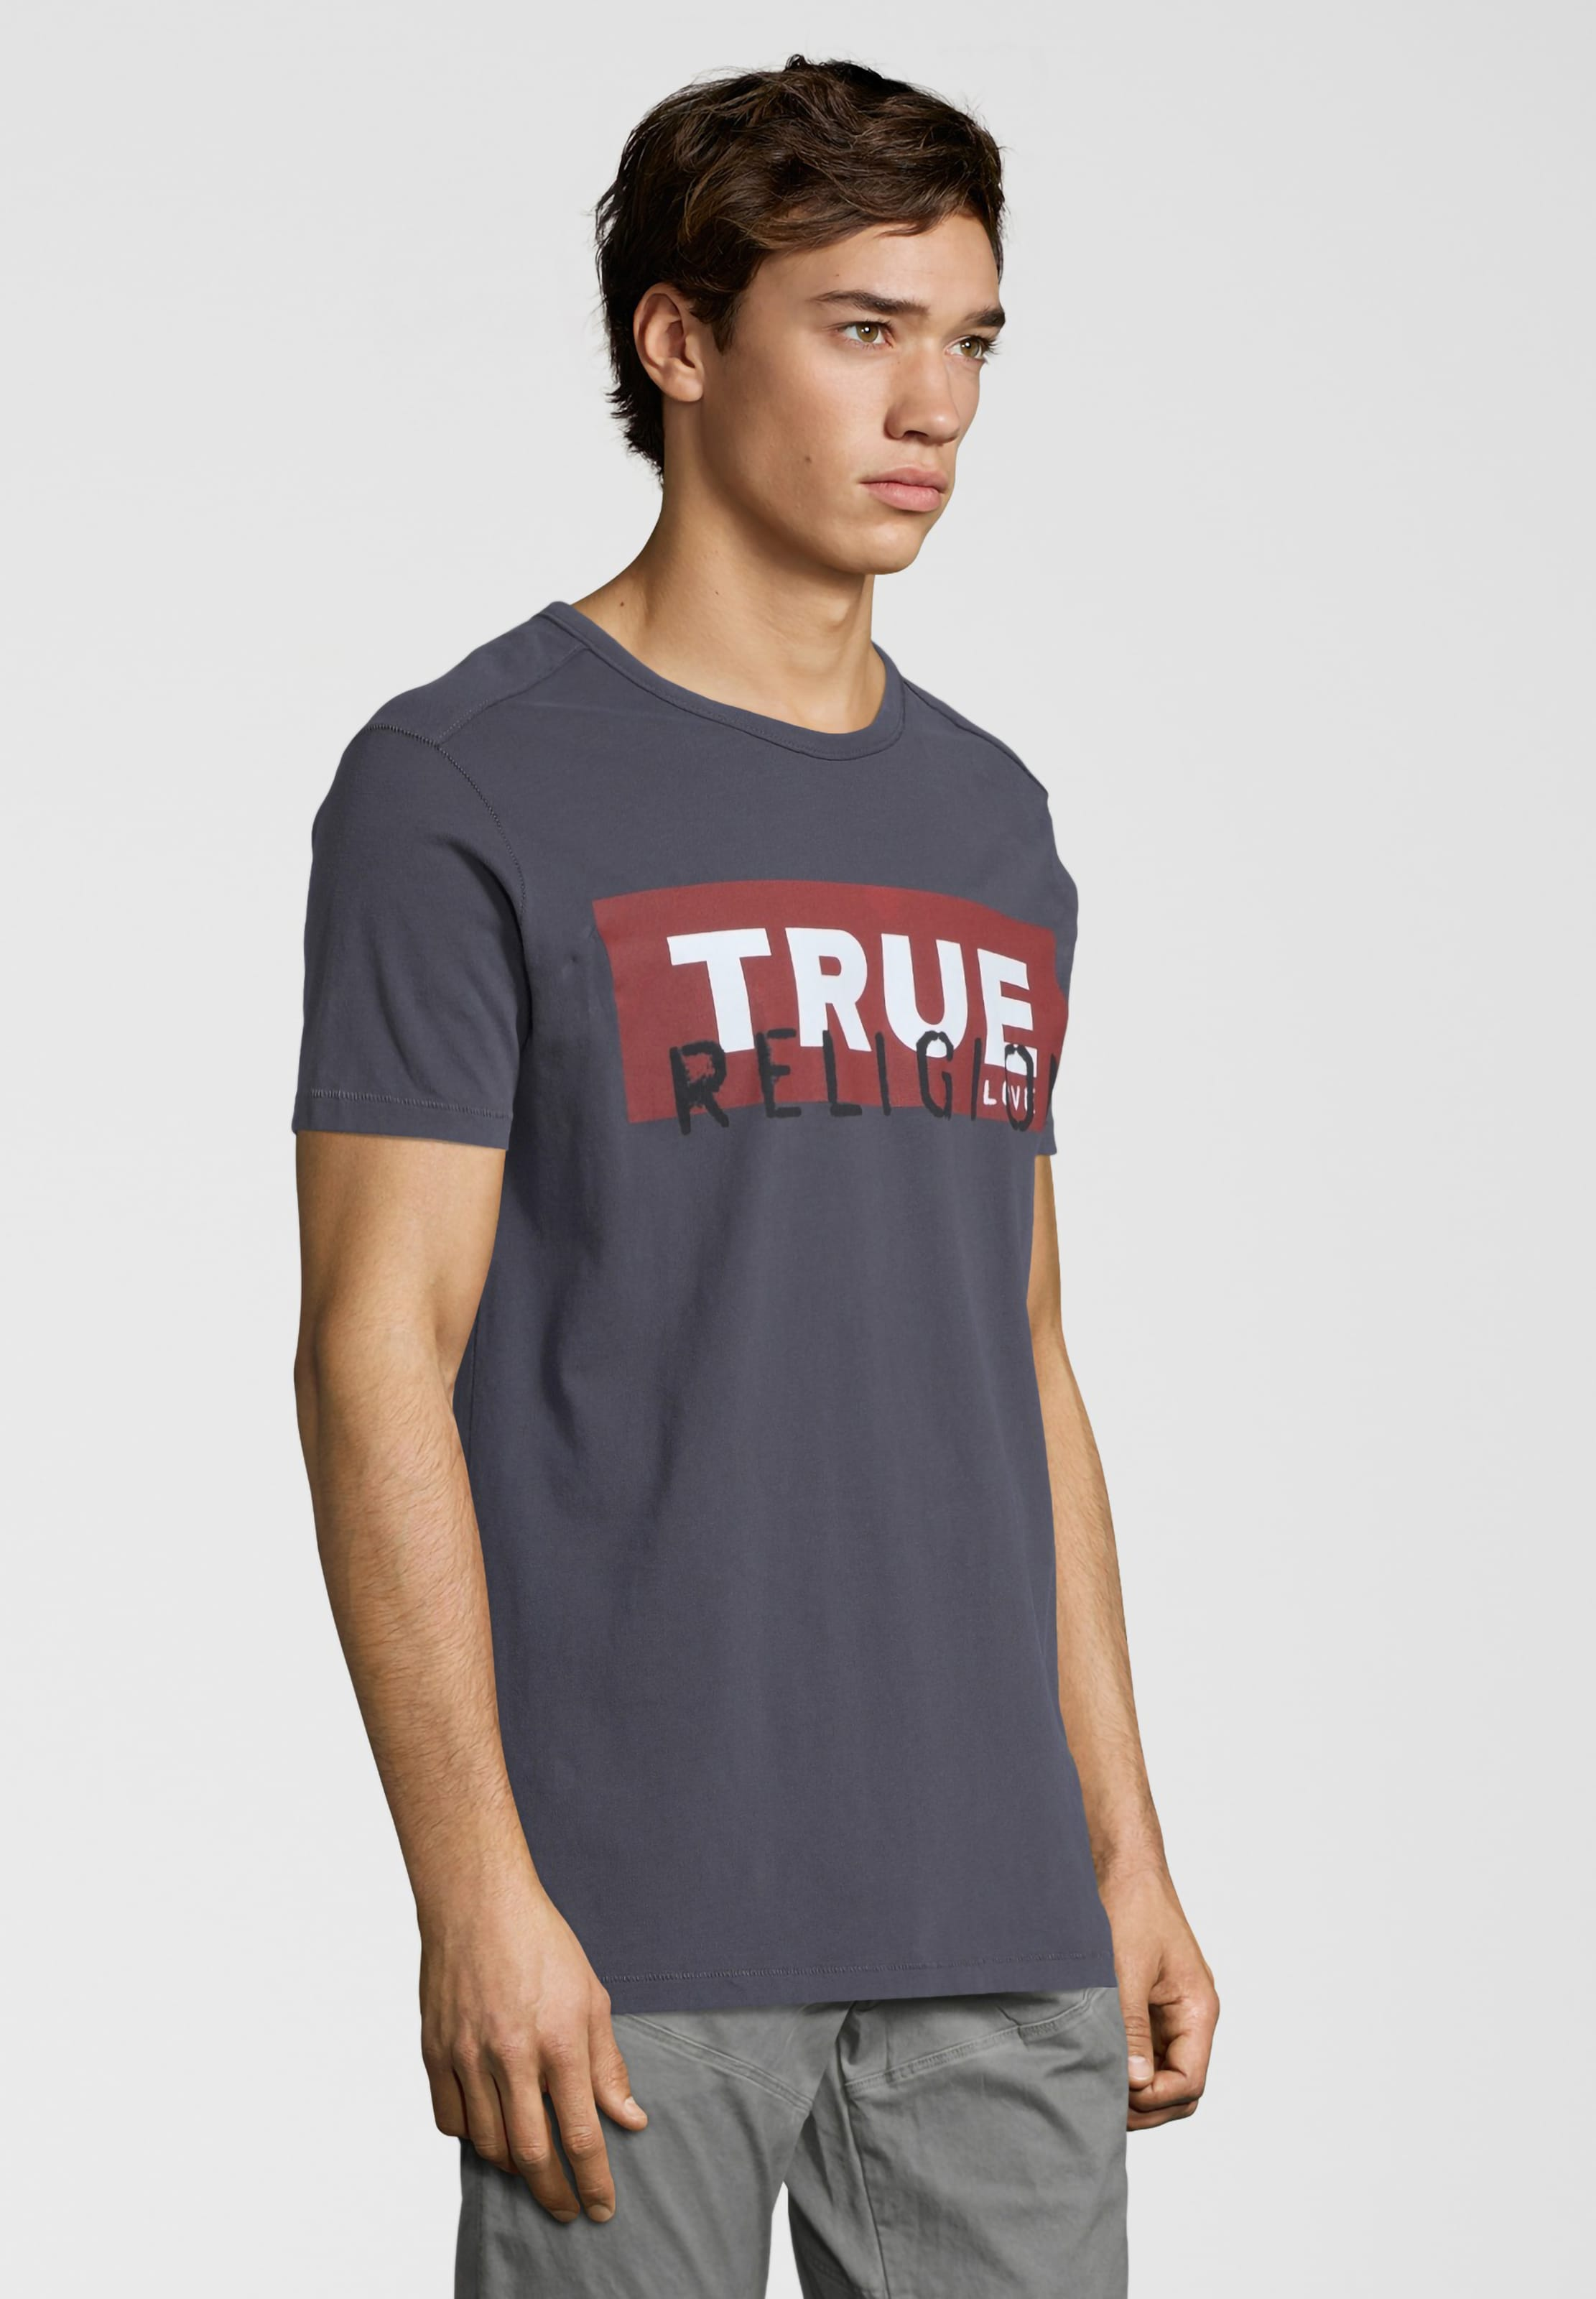 True Religion Grau T In shirt eCBrdxo